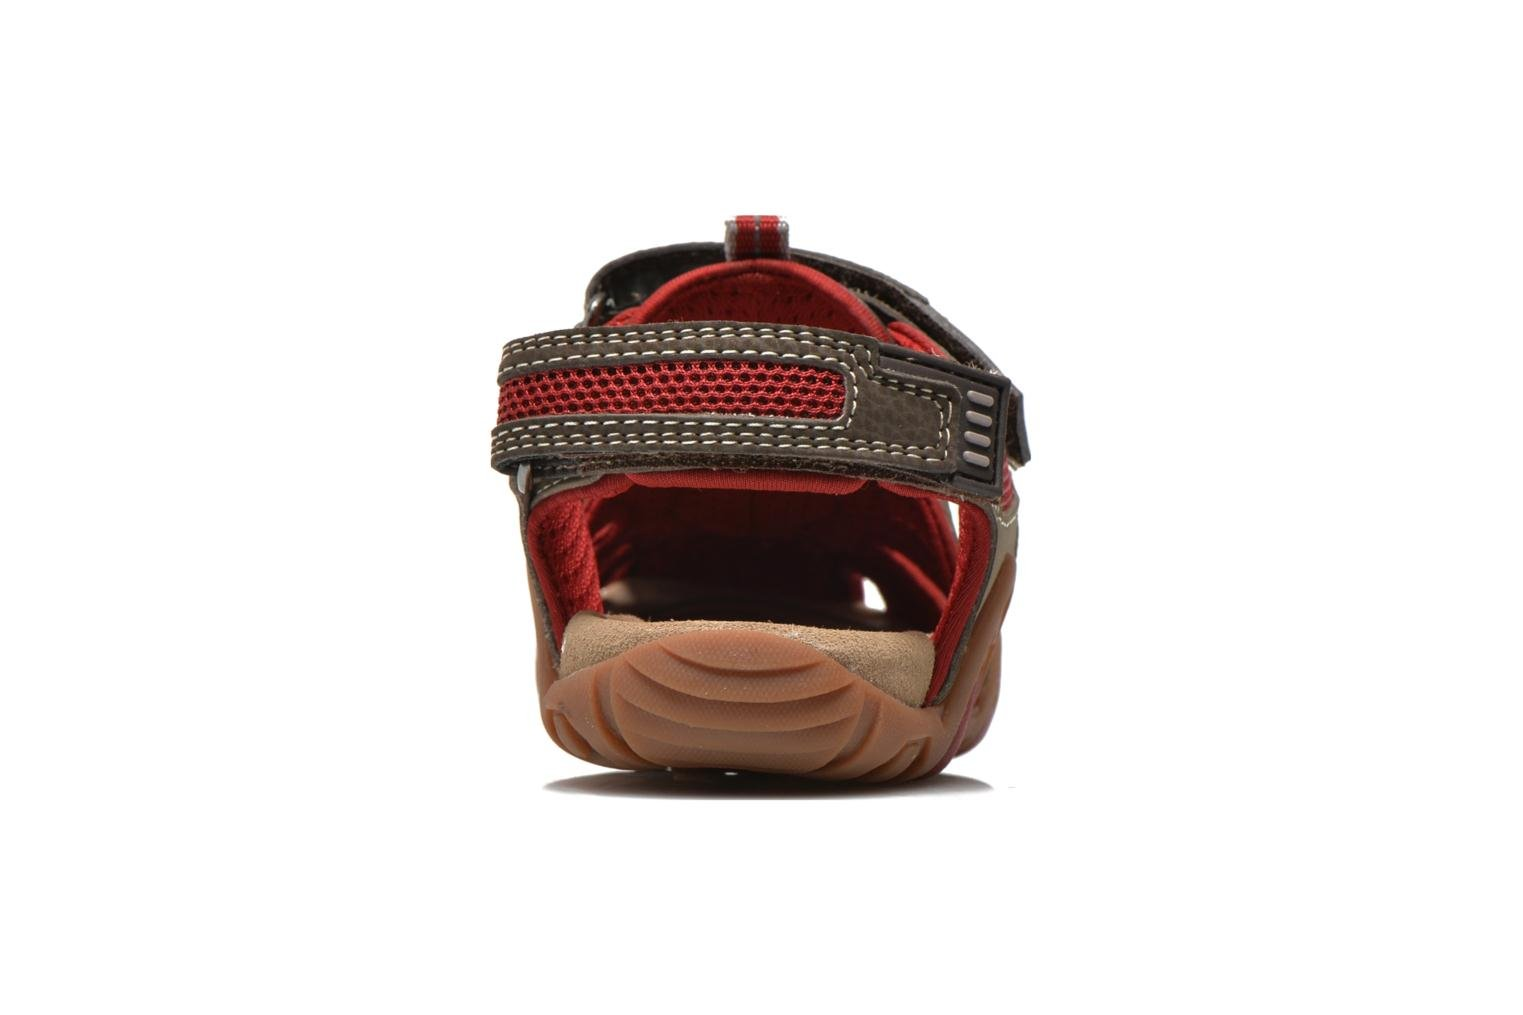 J Sand Kraze G J5224G Brown/red